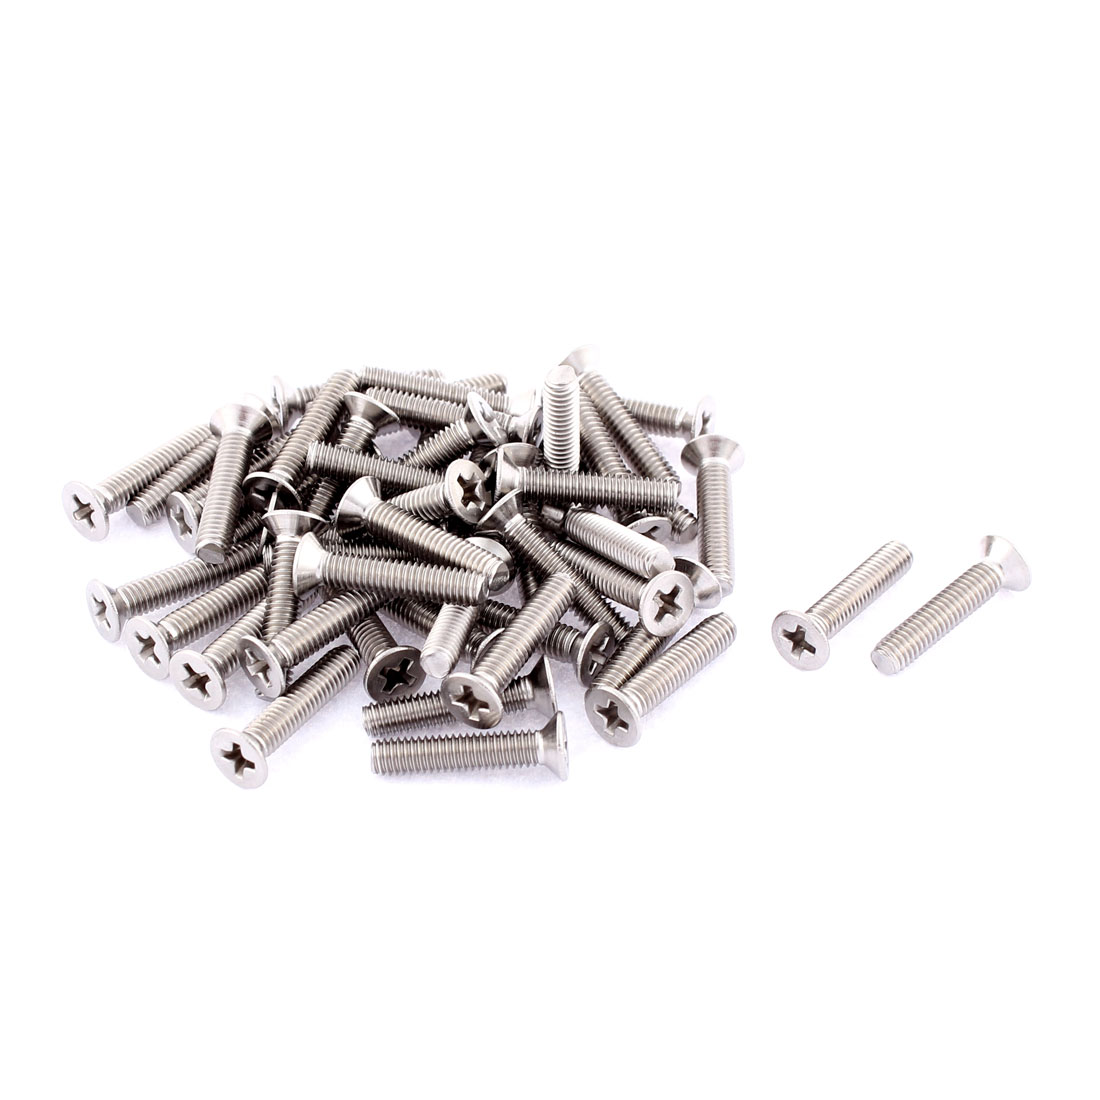 M4 x 20mm Phillips Round Head Countersunk Bolts Machine Screws 50pcs